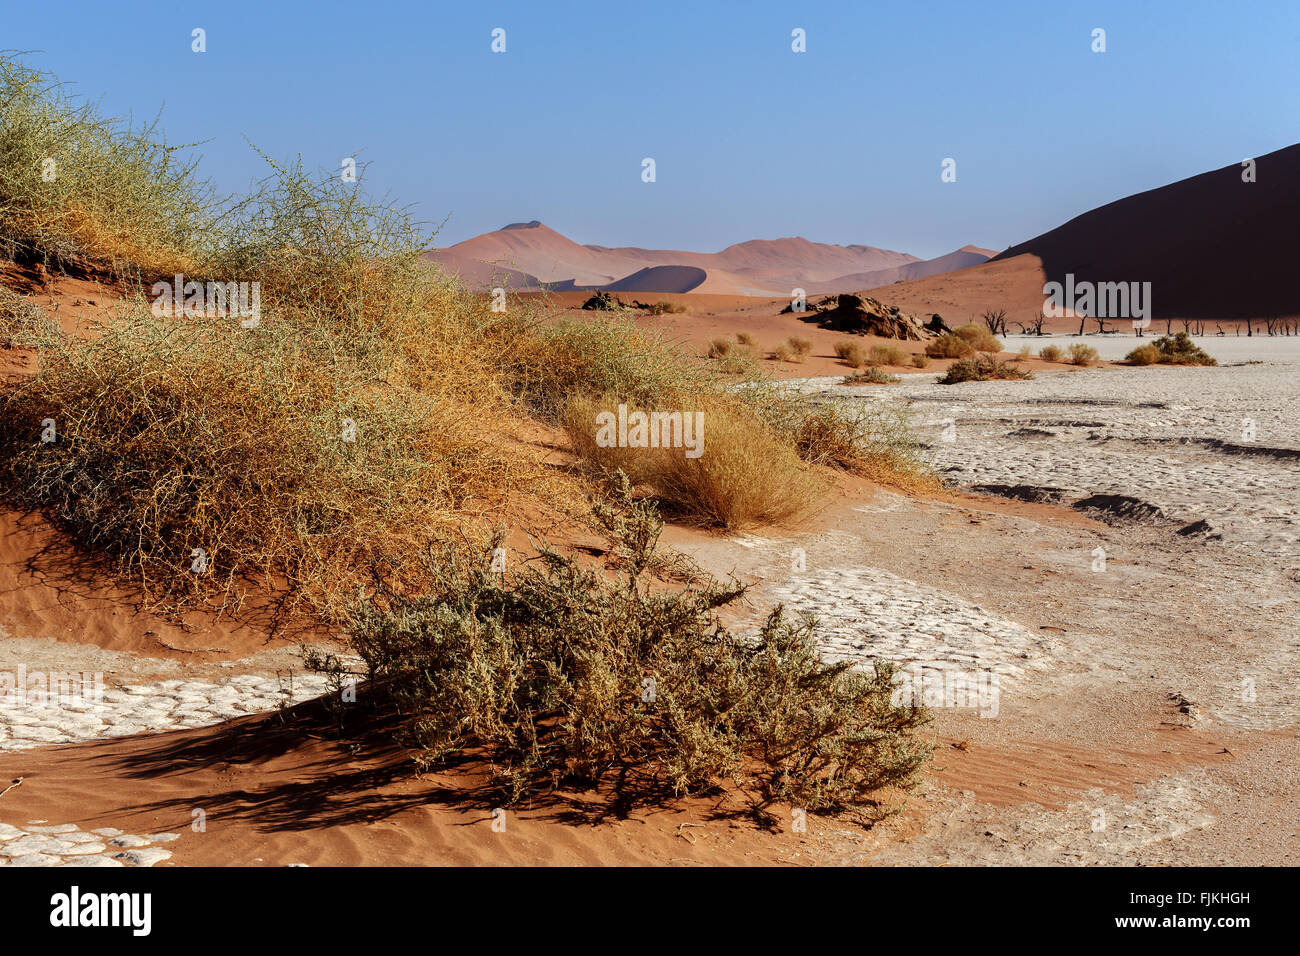 green small tree in hidden Dead Vlei in Namib desert with blue sky, this is best place of Namibia - Stock Image